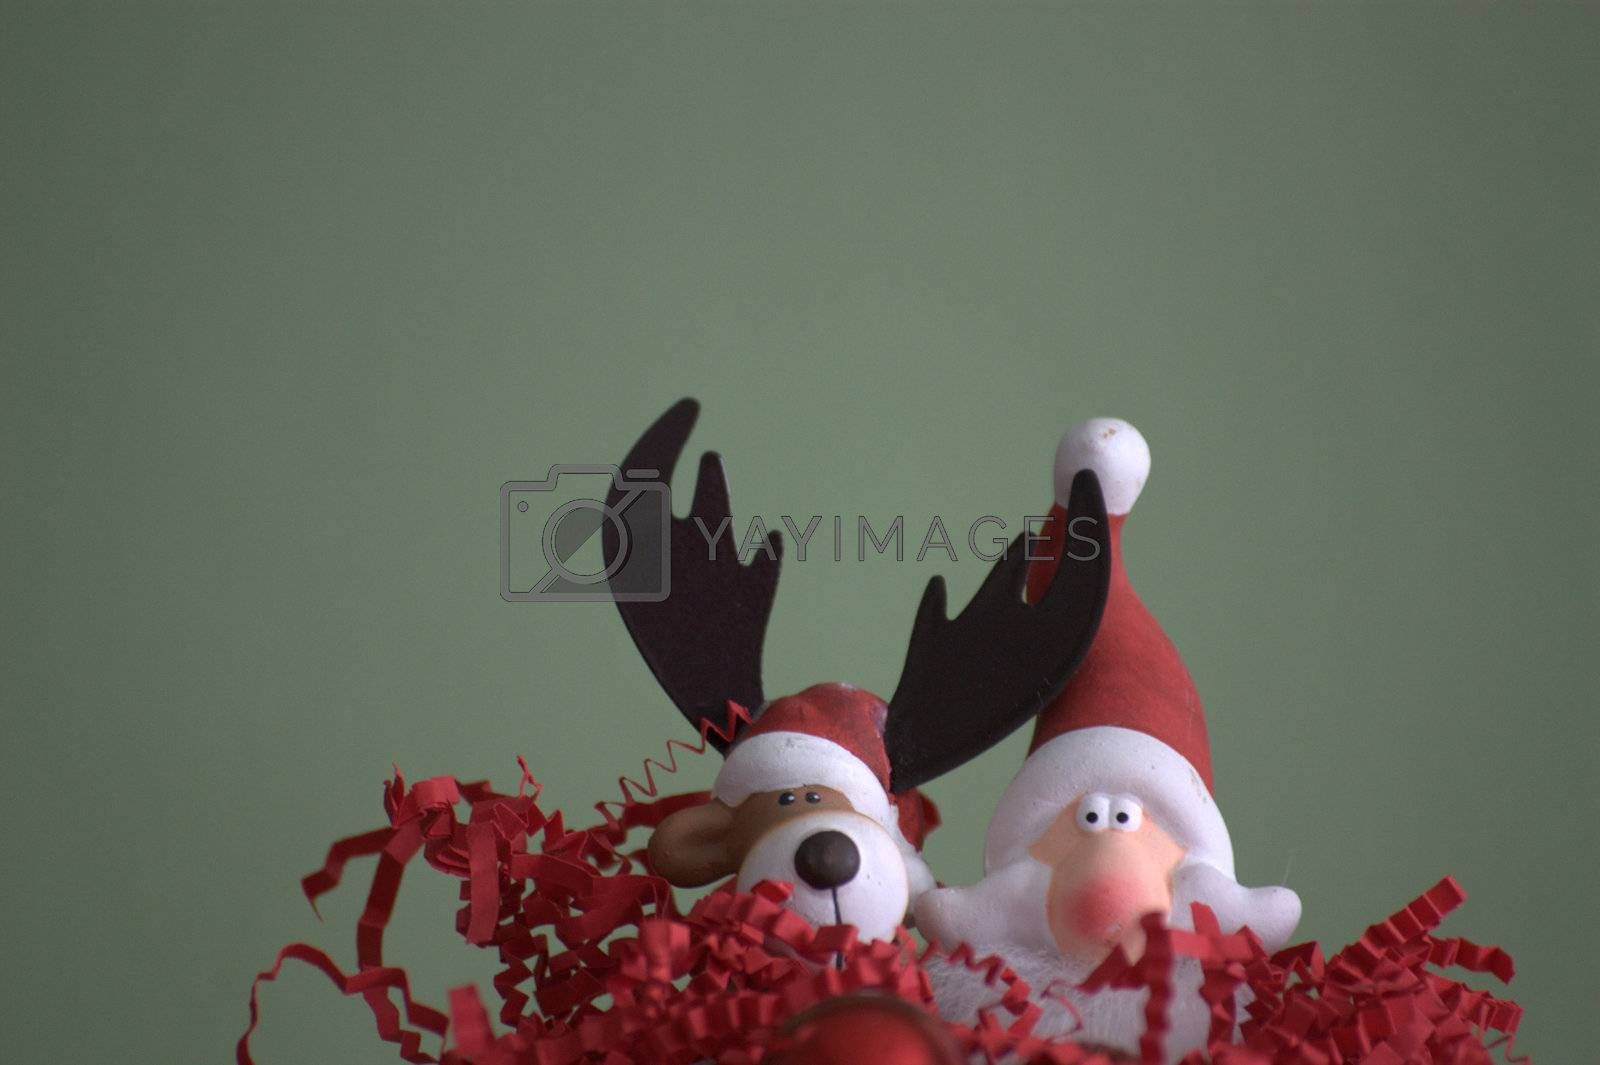 """Santa Claus, also known as Saint Nicholas, Sinterklaas, Father Christmas, Kris Kringle, or simply """"Santa"""", is a figure who, in many Western cultures, brings gifts to the homes of the good children"""